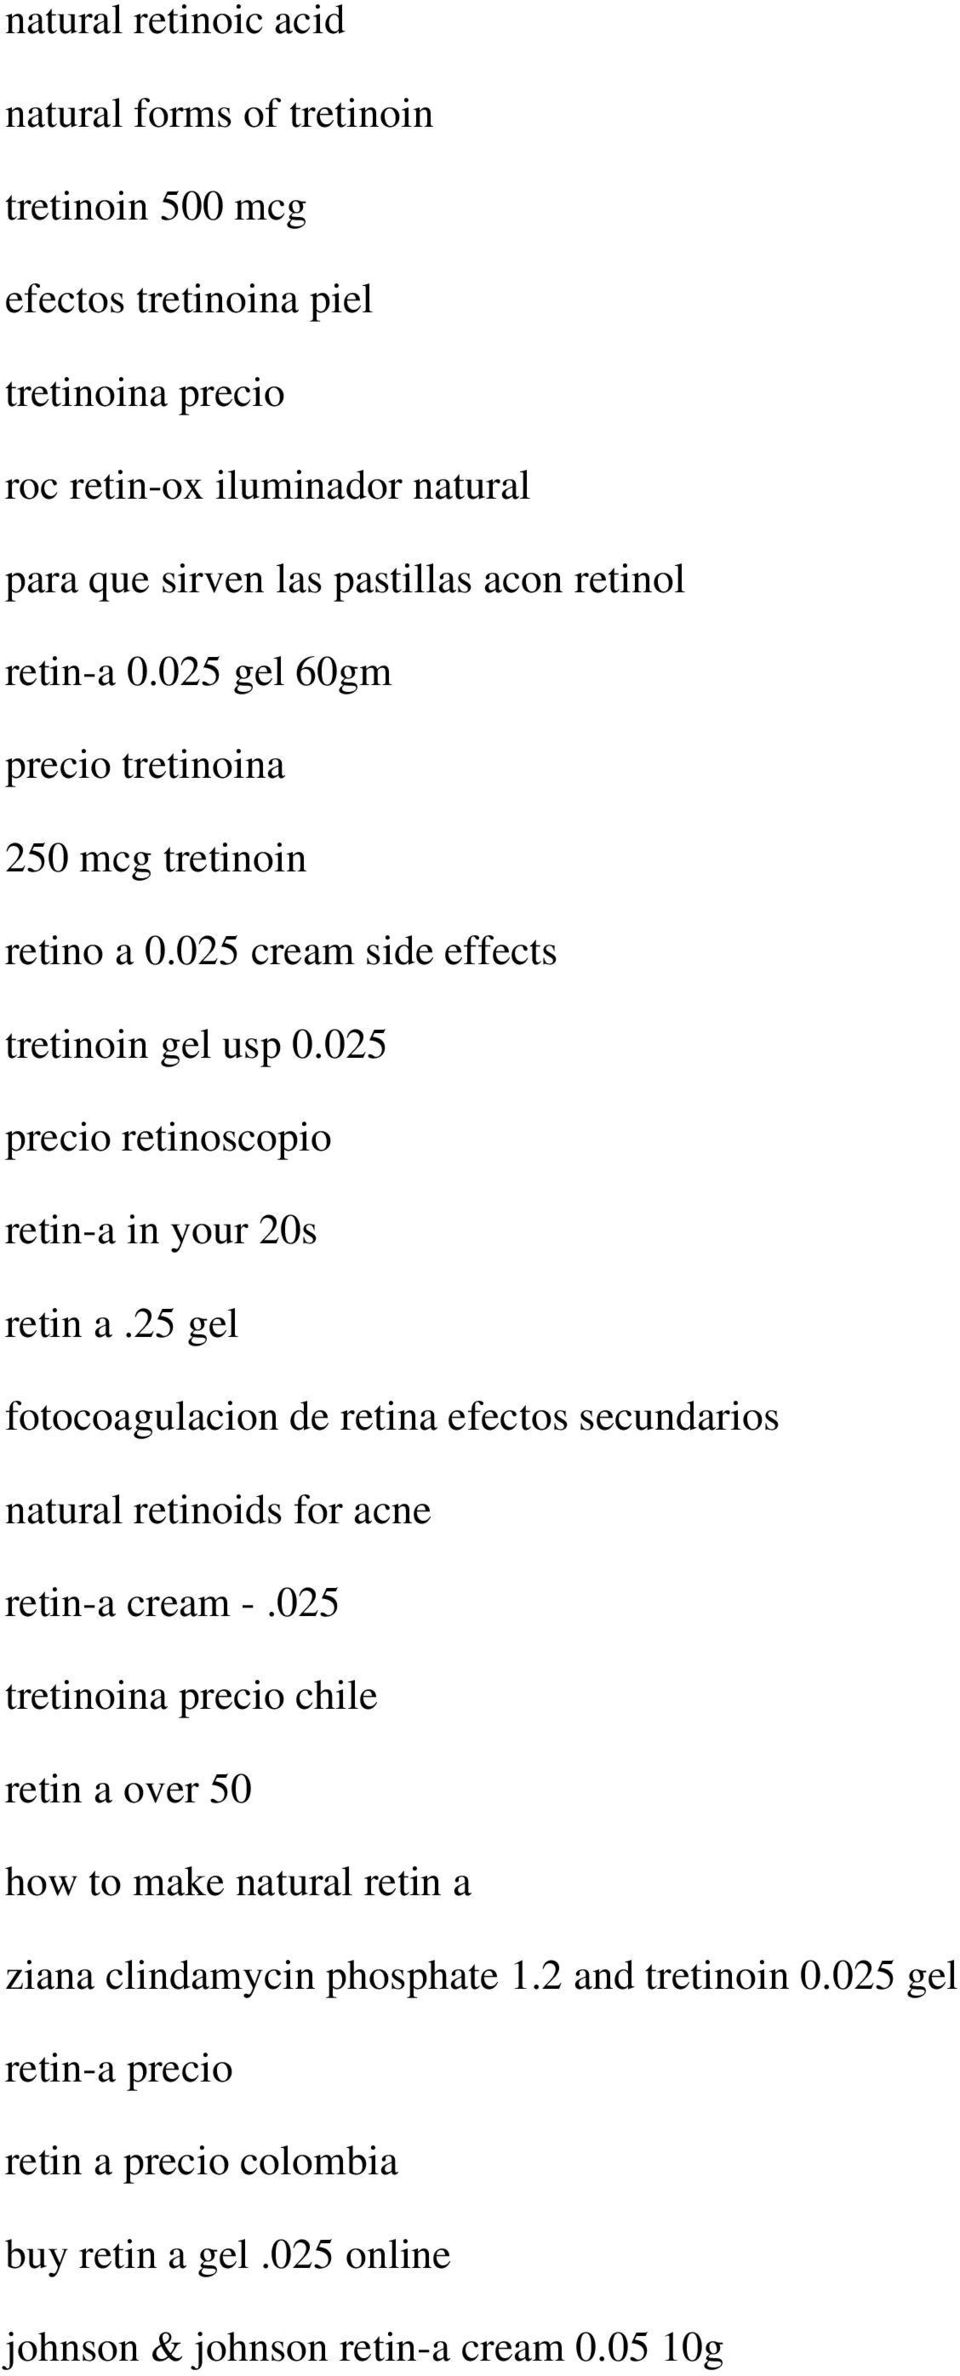 025 precio retinoscopio retin-a in your 20s retin a.25 gel fotocoagulacion de retina efectos secundarios natural retinoids for acne retin-a cream -.